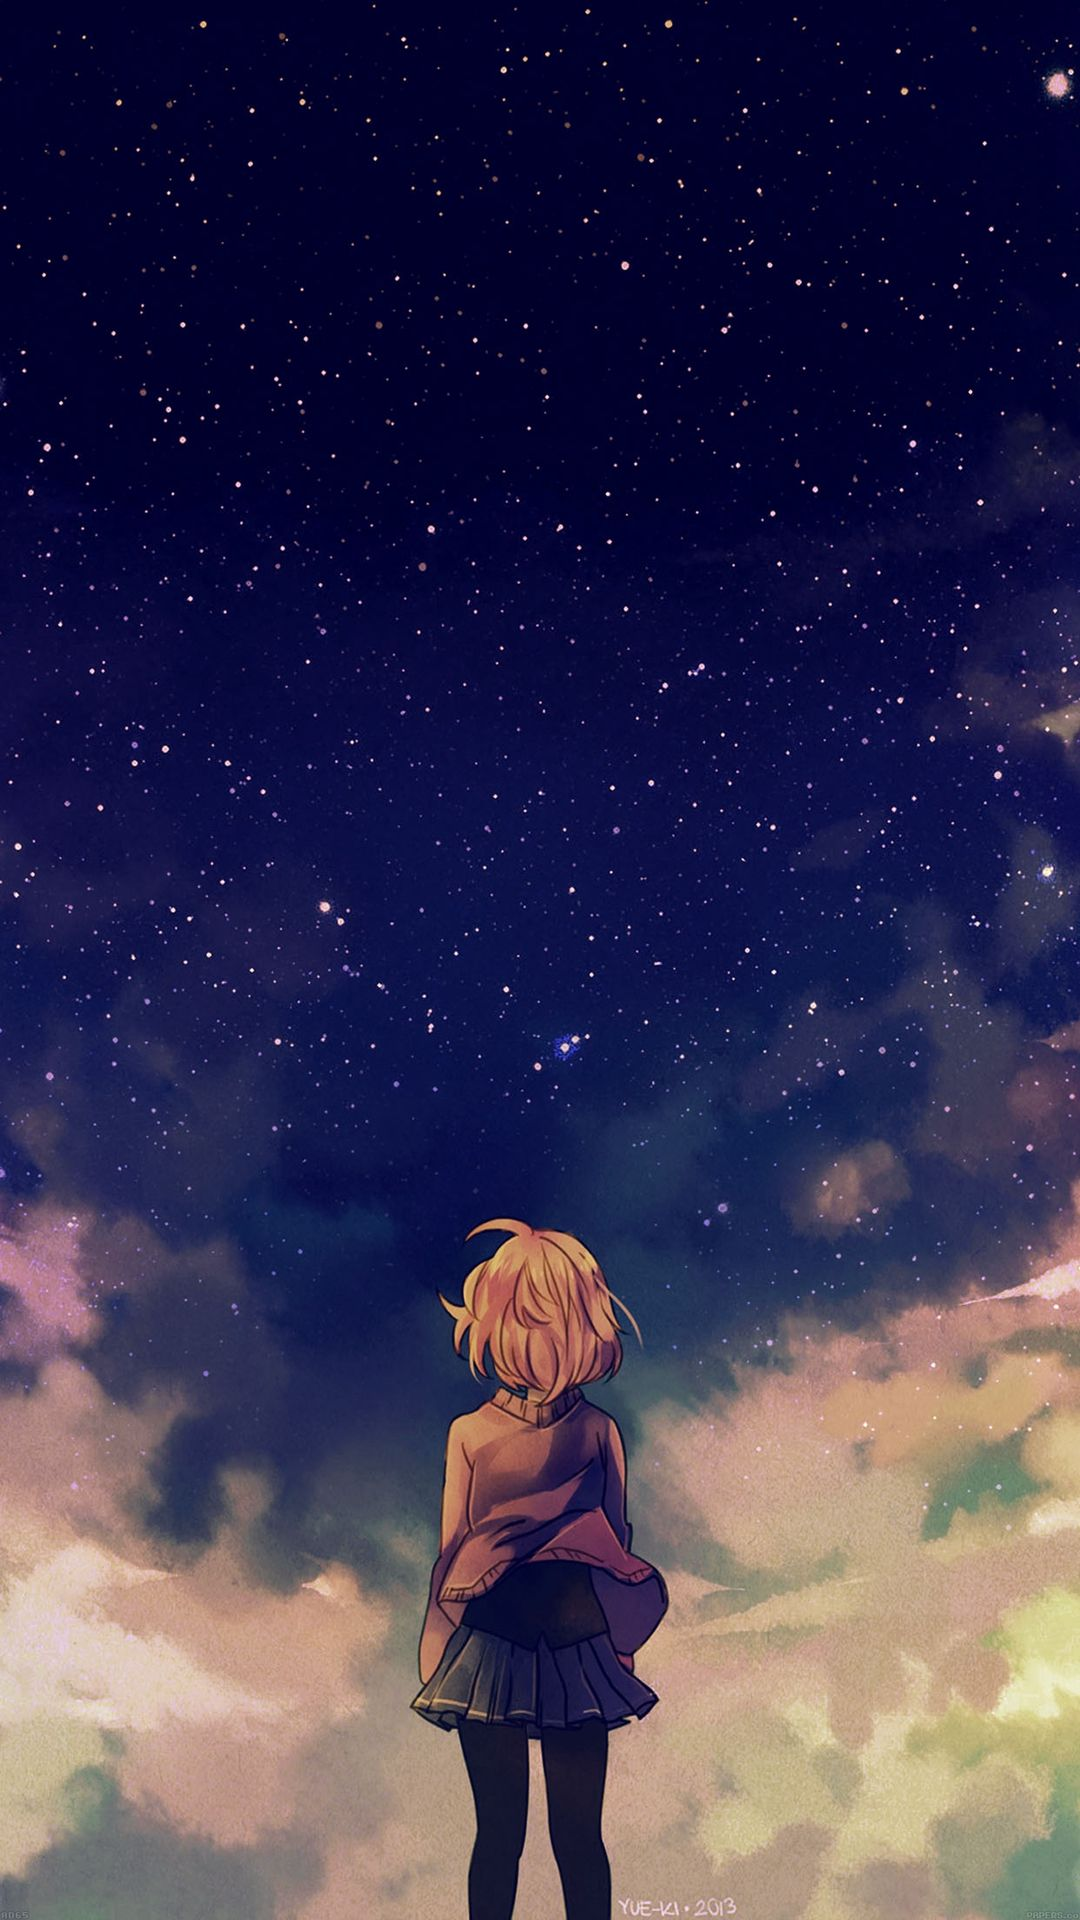 Starry Space Illust Anime Girl iPhone 6 wallpaper Geek